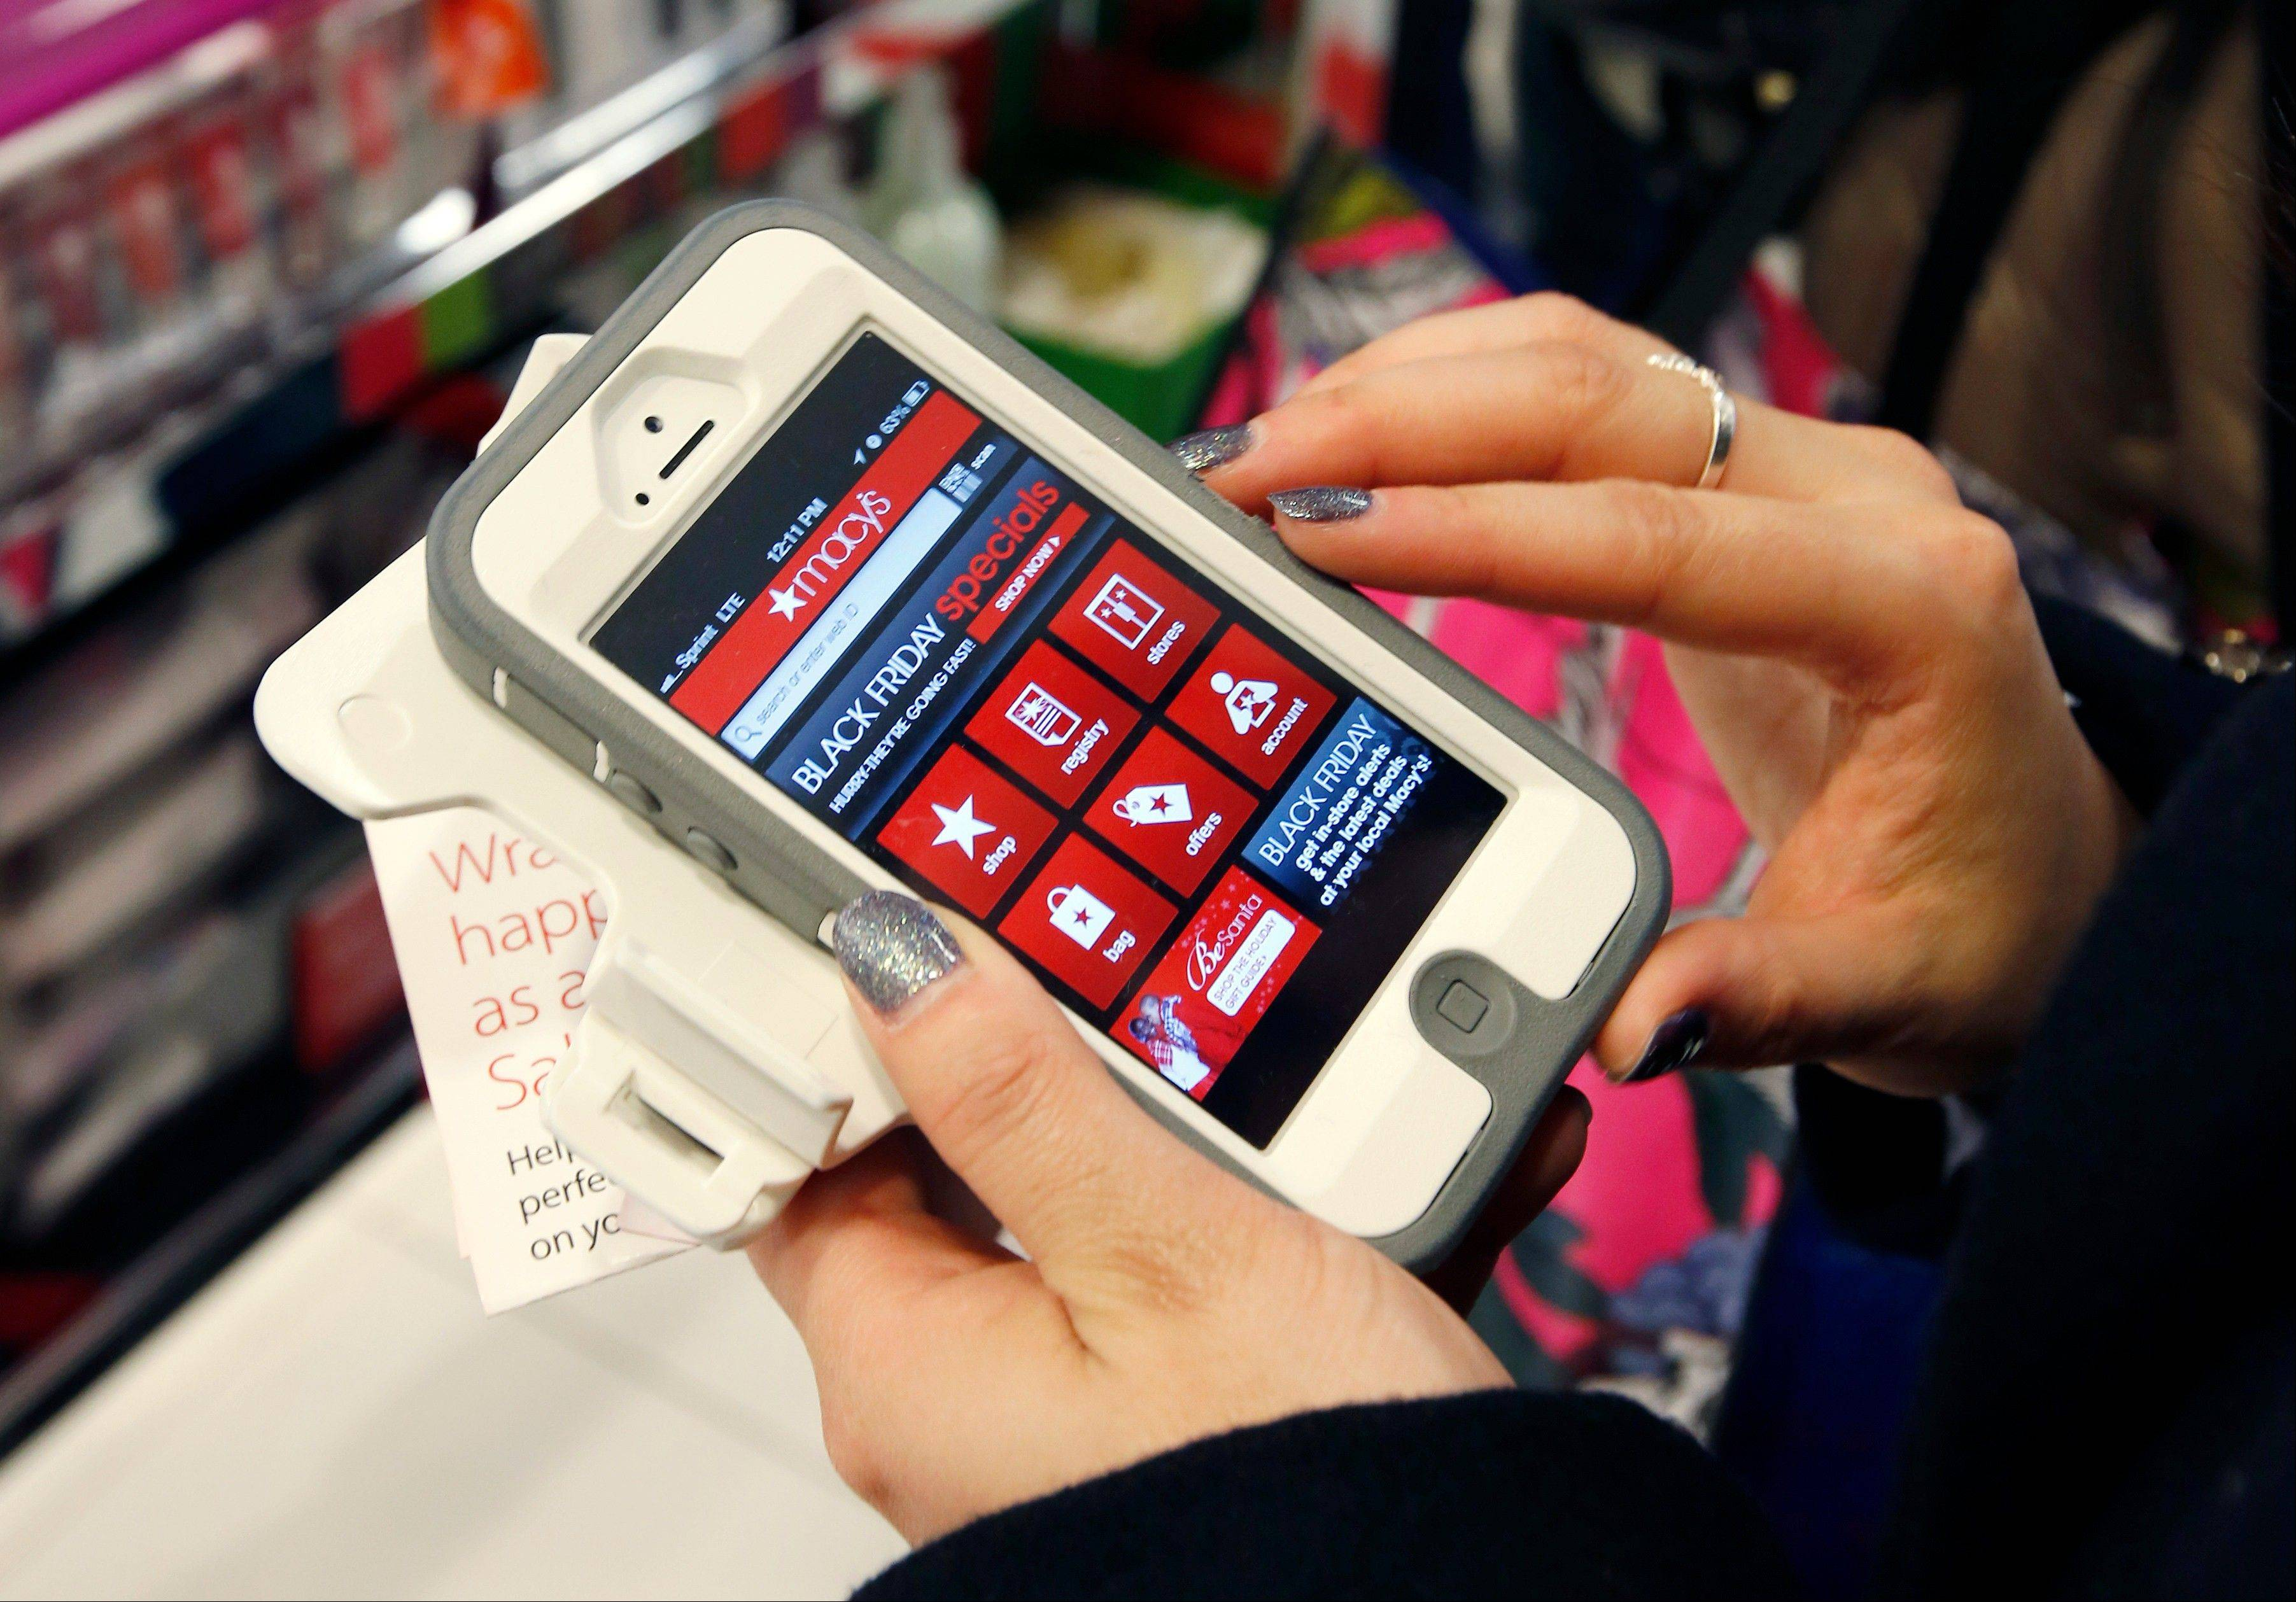 Tashalee Rodriguez of Boston uses a smartphone app while shopping at Macy�s in downtown Boston. Big retailers are offering apps that feature a hefty selection of deals.